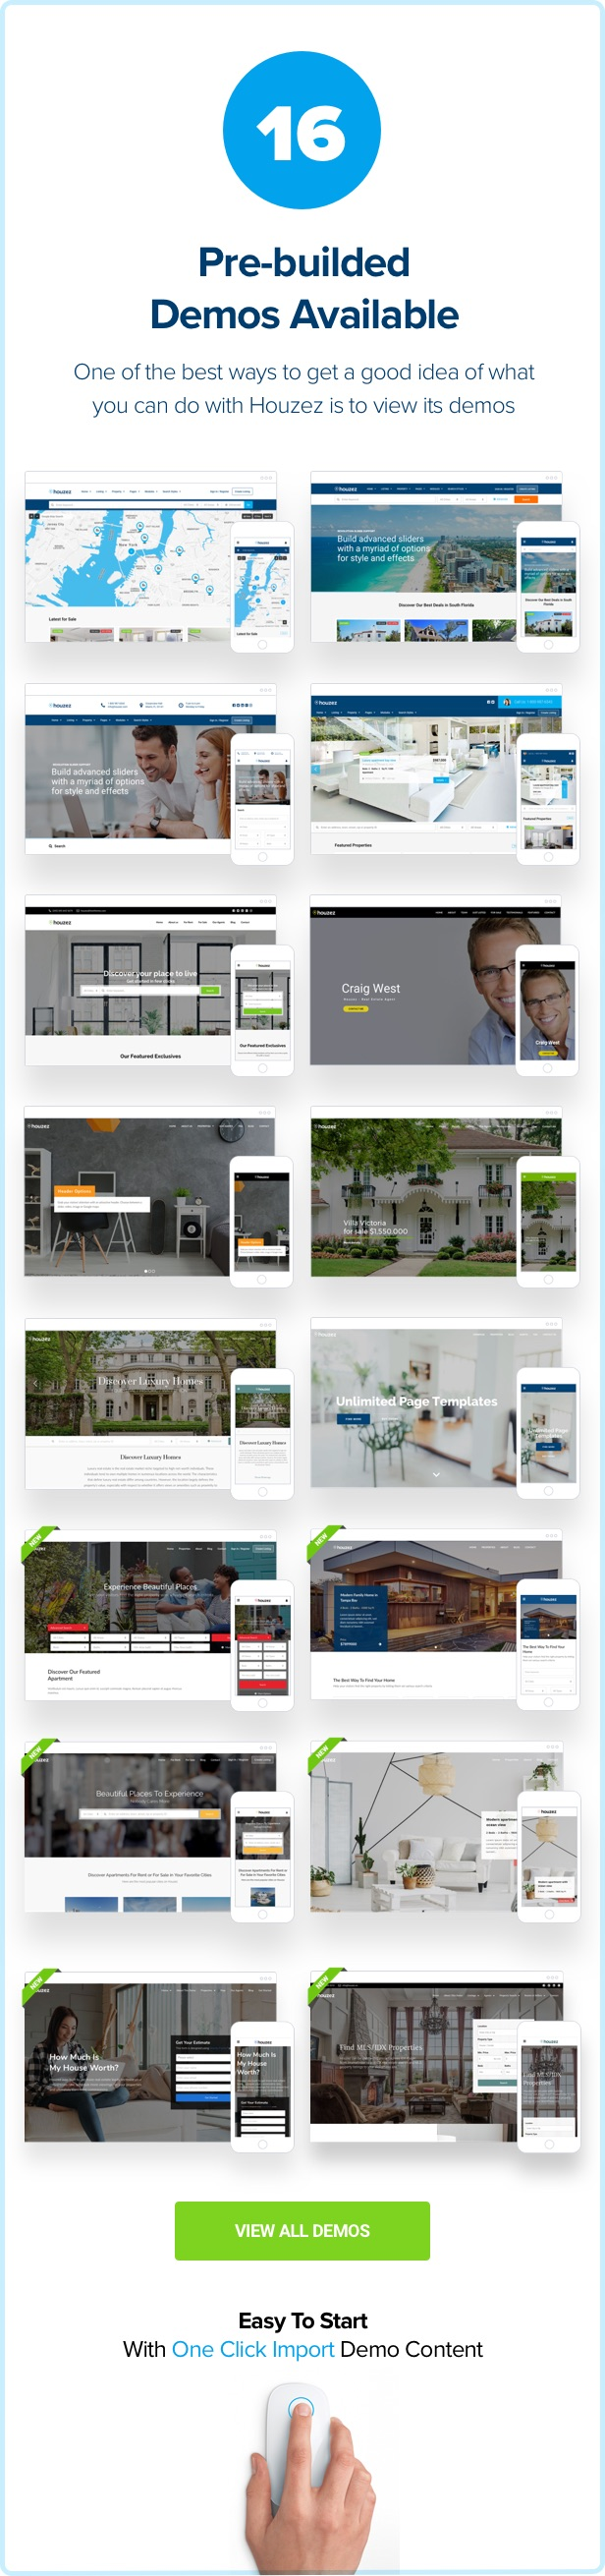 Houzez - Real Estate WordPress Theme by favethemes | ThemeForest on vacation house designs, bedroom house designs, hunting house designs, exotic house designs, outdoor house designs, nature house designs, handicap house designs, spearfishing house designs, cosmopolitan house designs, eco friendly house designs, alternative house designs, doll house designs, resort house designs, high tech house designs, pet house designs, indoor house designs, masonry house designs, luxury house designs, tap house designs, pool house designs,